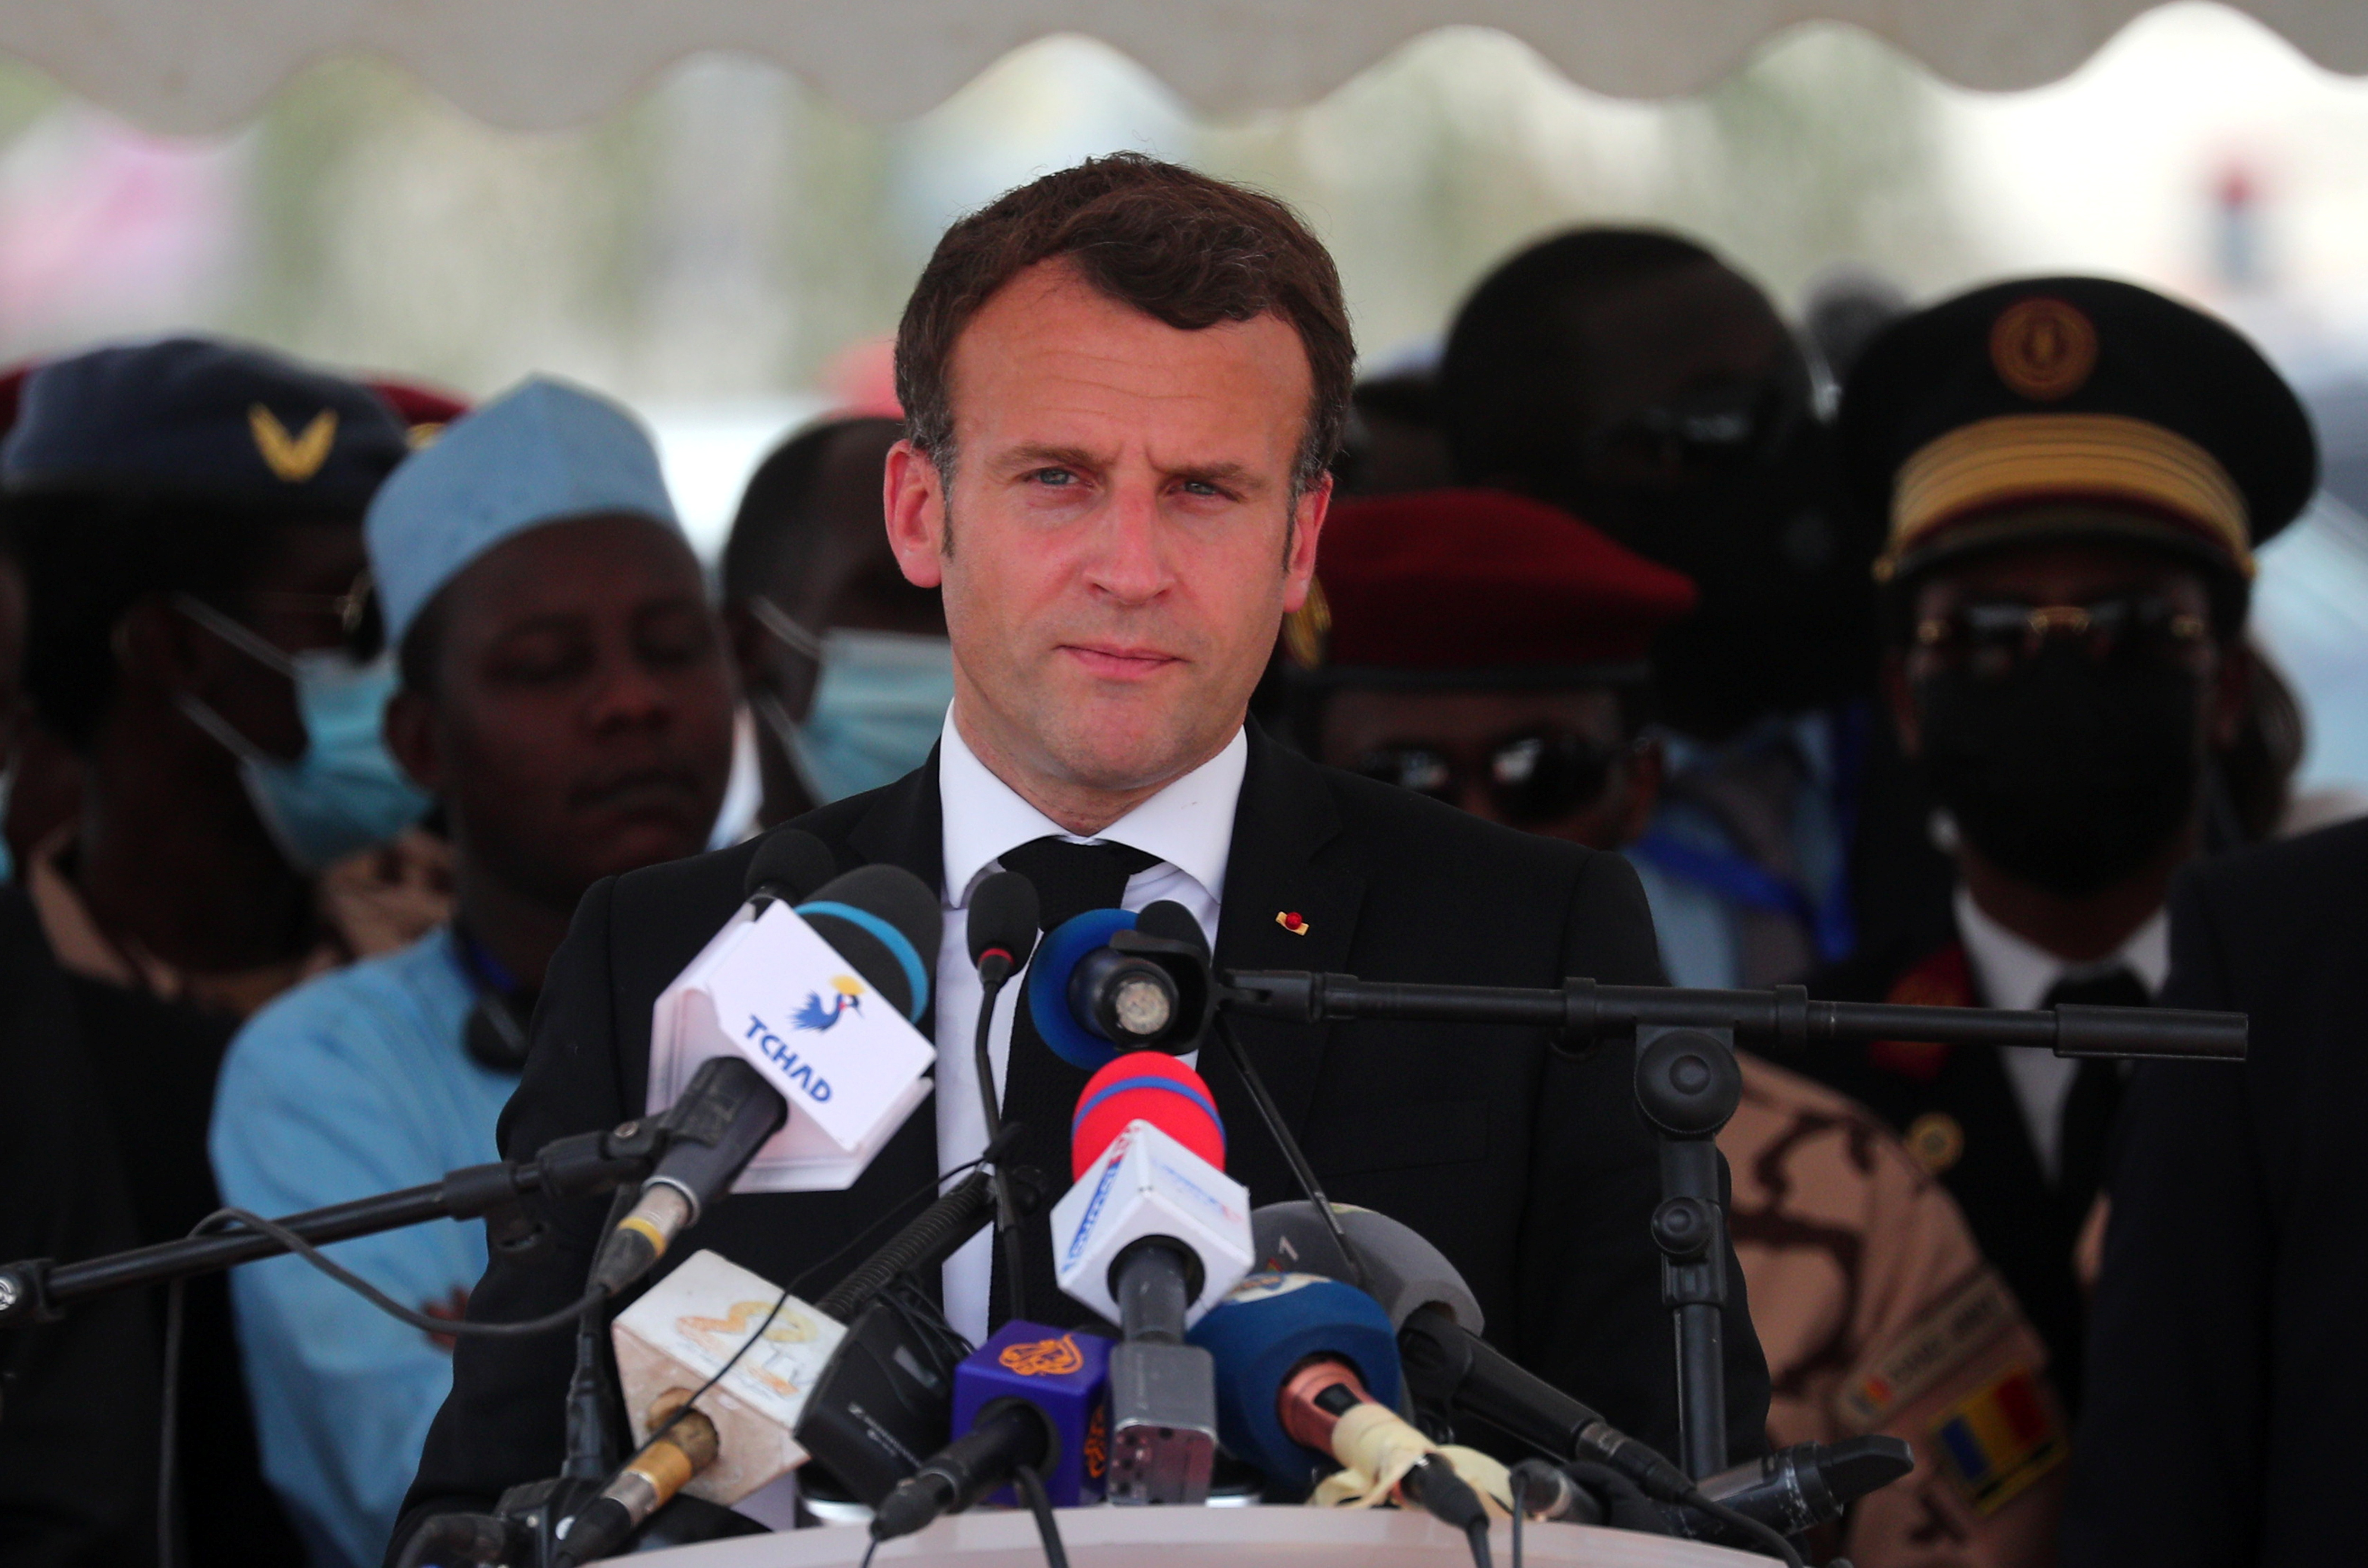 French President Emmanuel Macron delivers a speech during the state funeral for the late Chadian President Idriss Deby in N'Djamena, Chad April 23, 2021. Christophe Petit Tesson/Pool via REUTERS